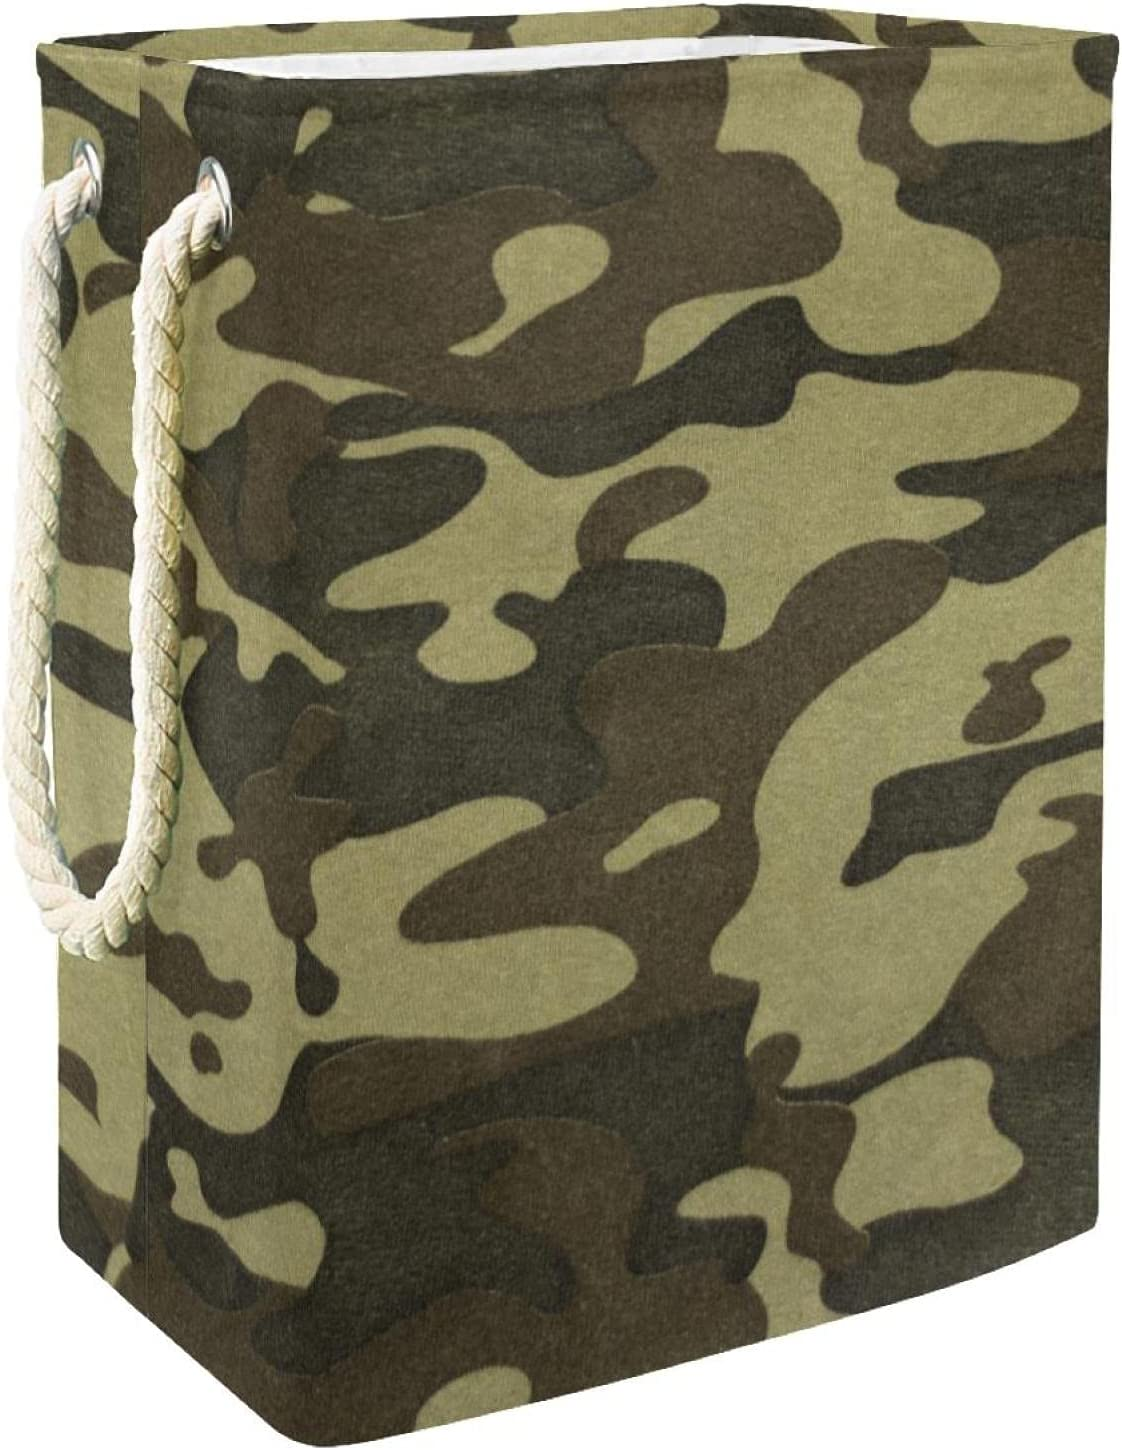 Camouflage low-pricing Camo Laundry Basket Organizer Collapsible Rectangular Dealing full price reduction